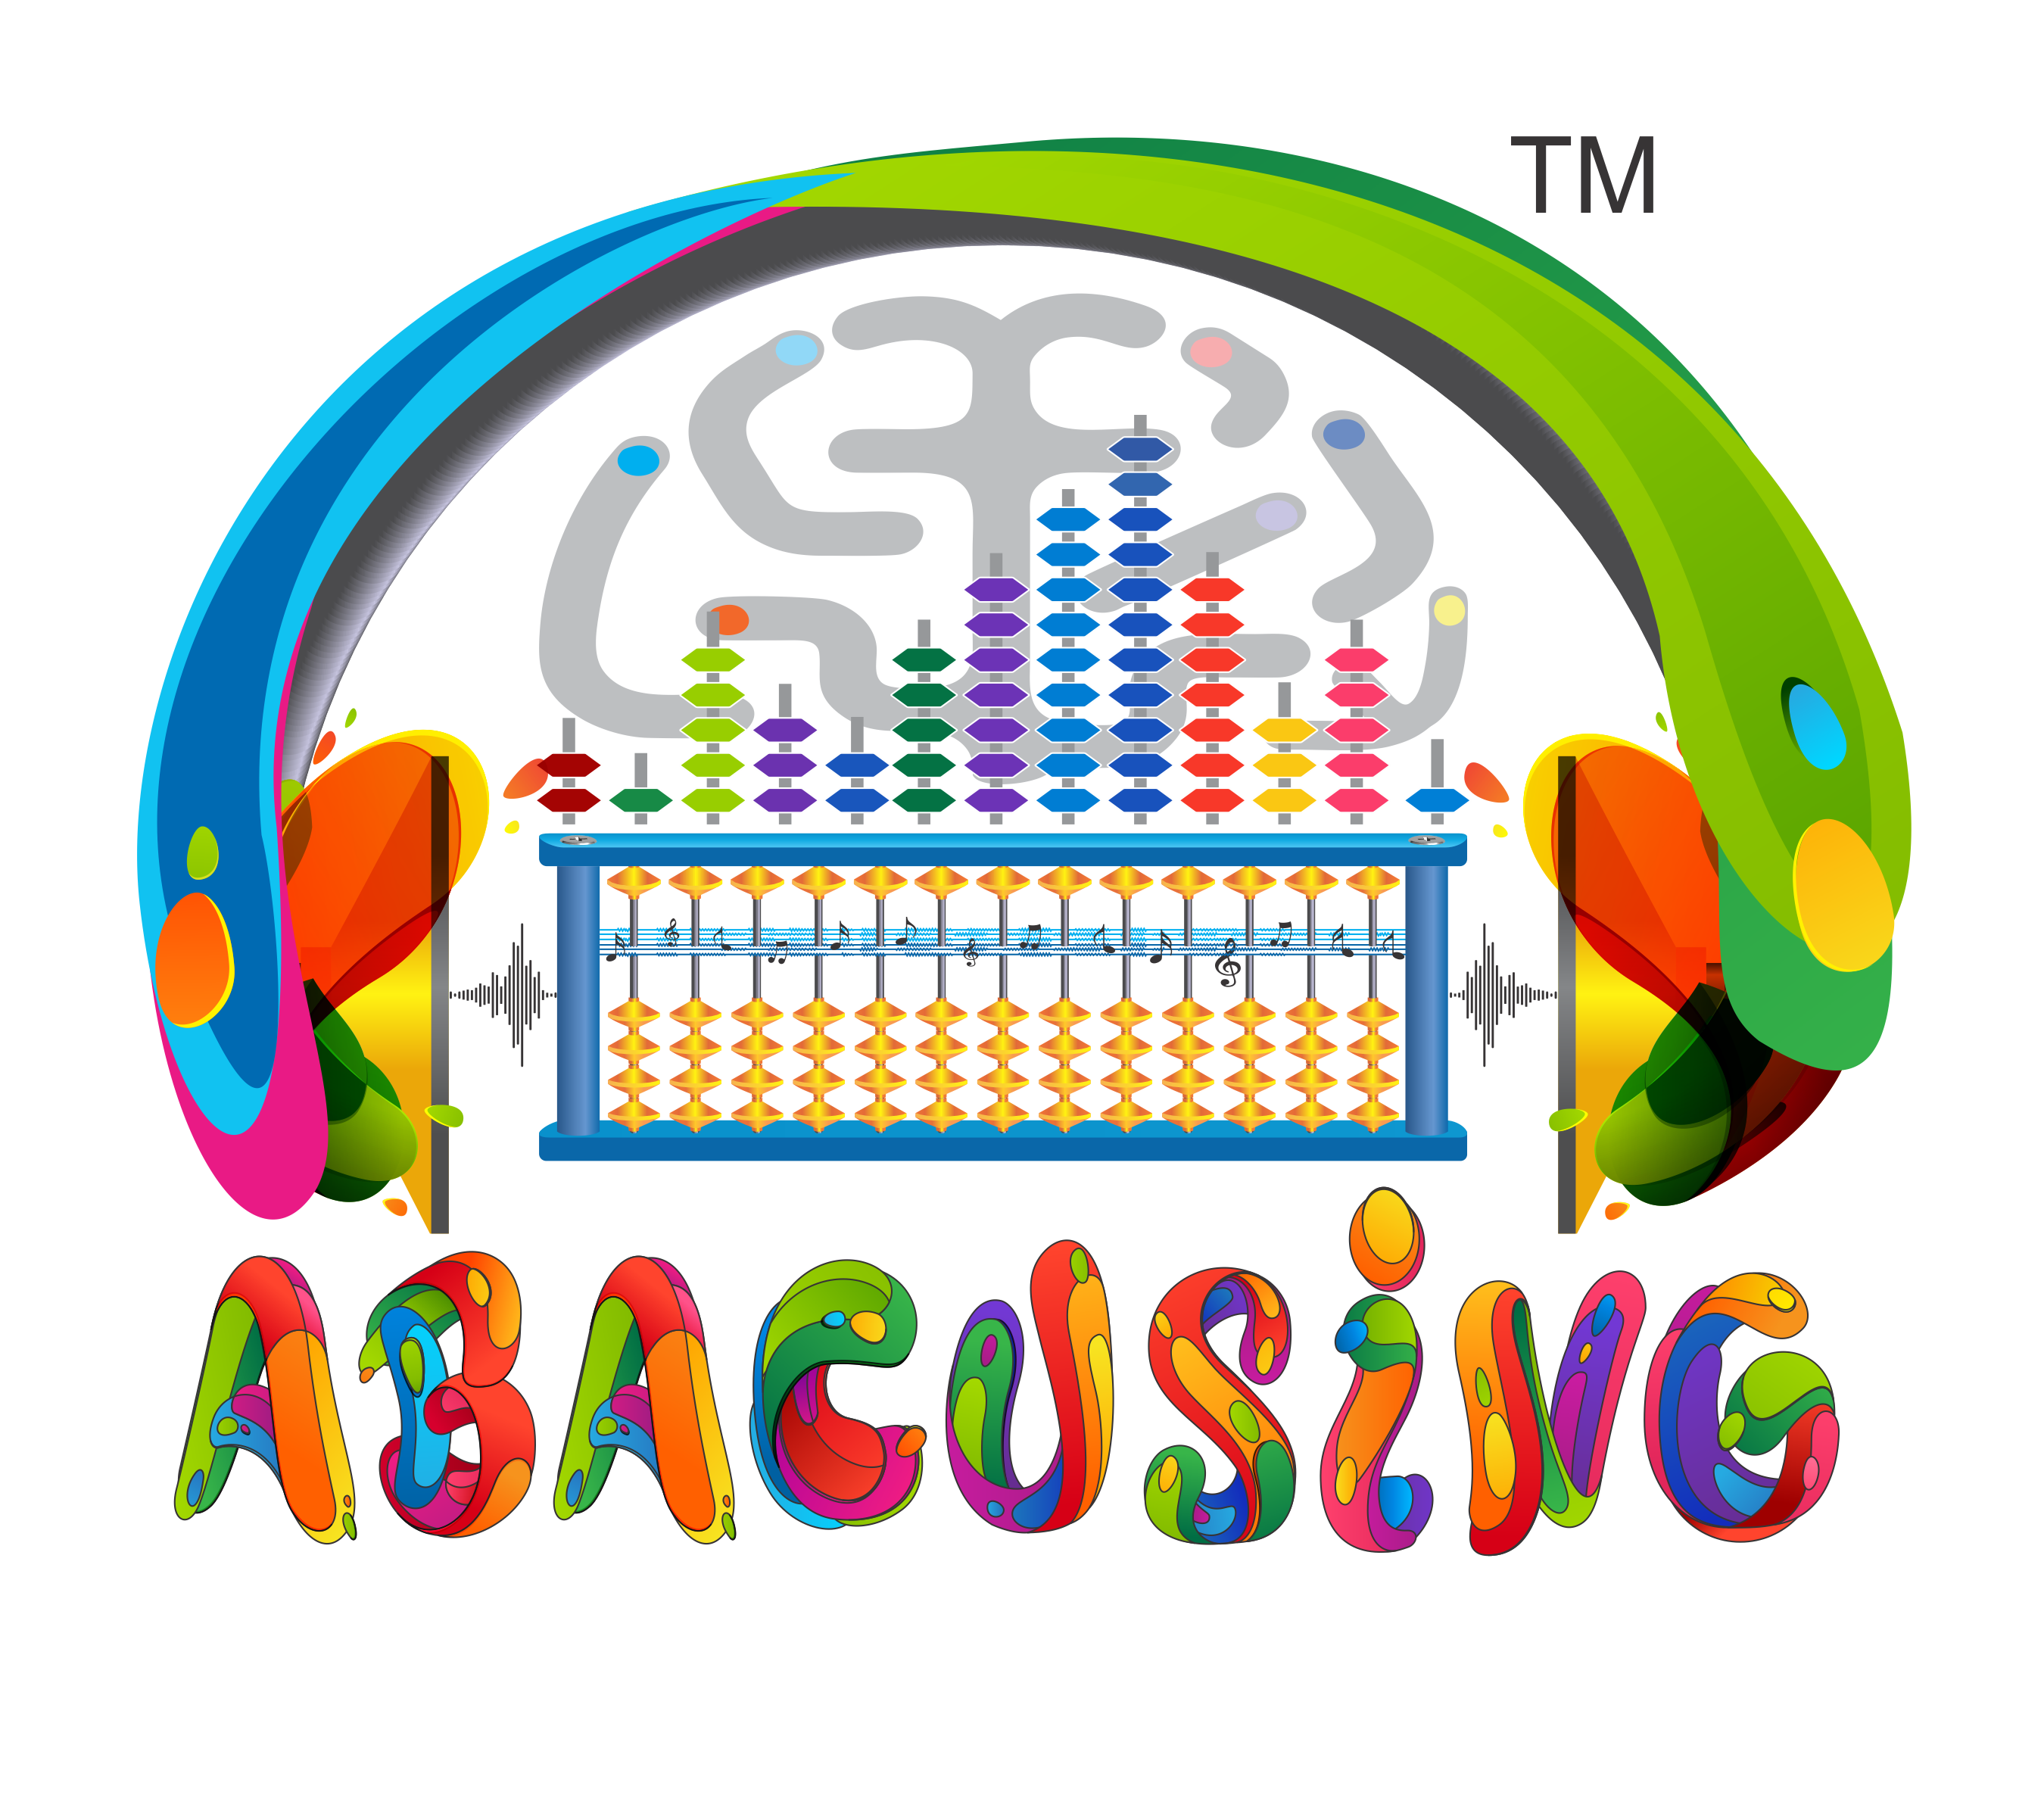 Abacus franchise training class. Contract clipart business proposal